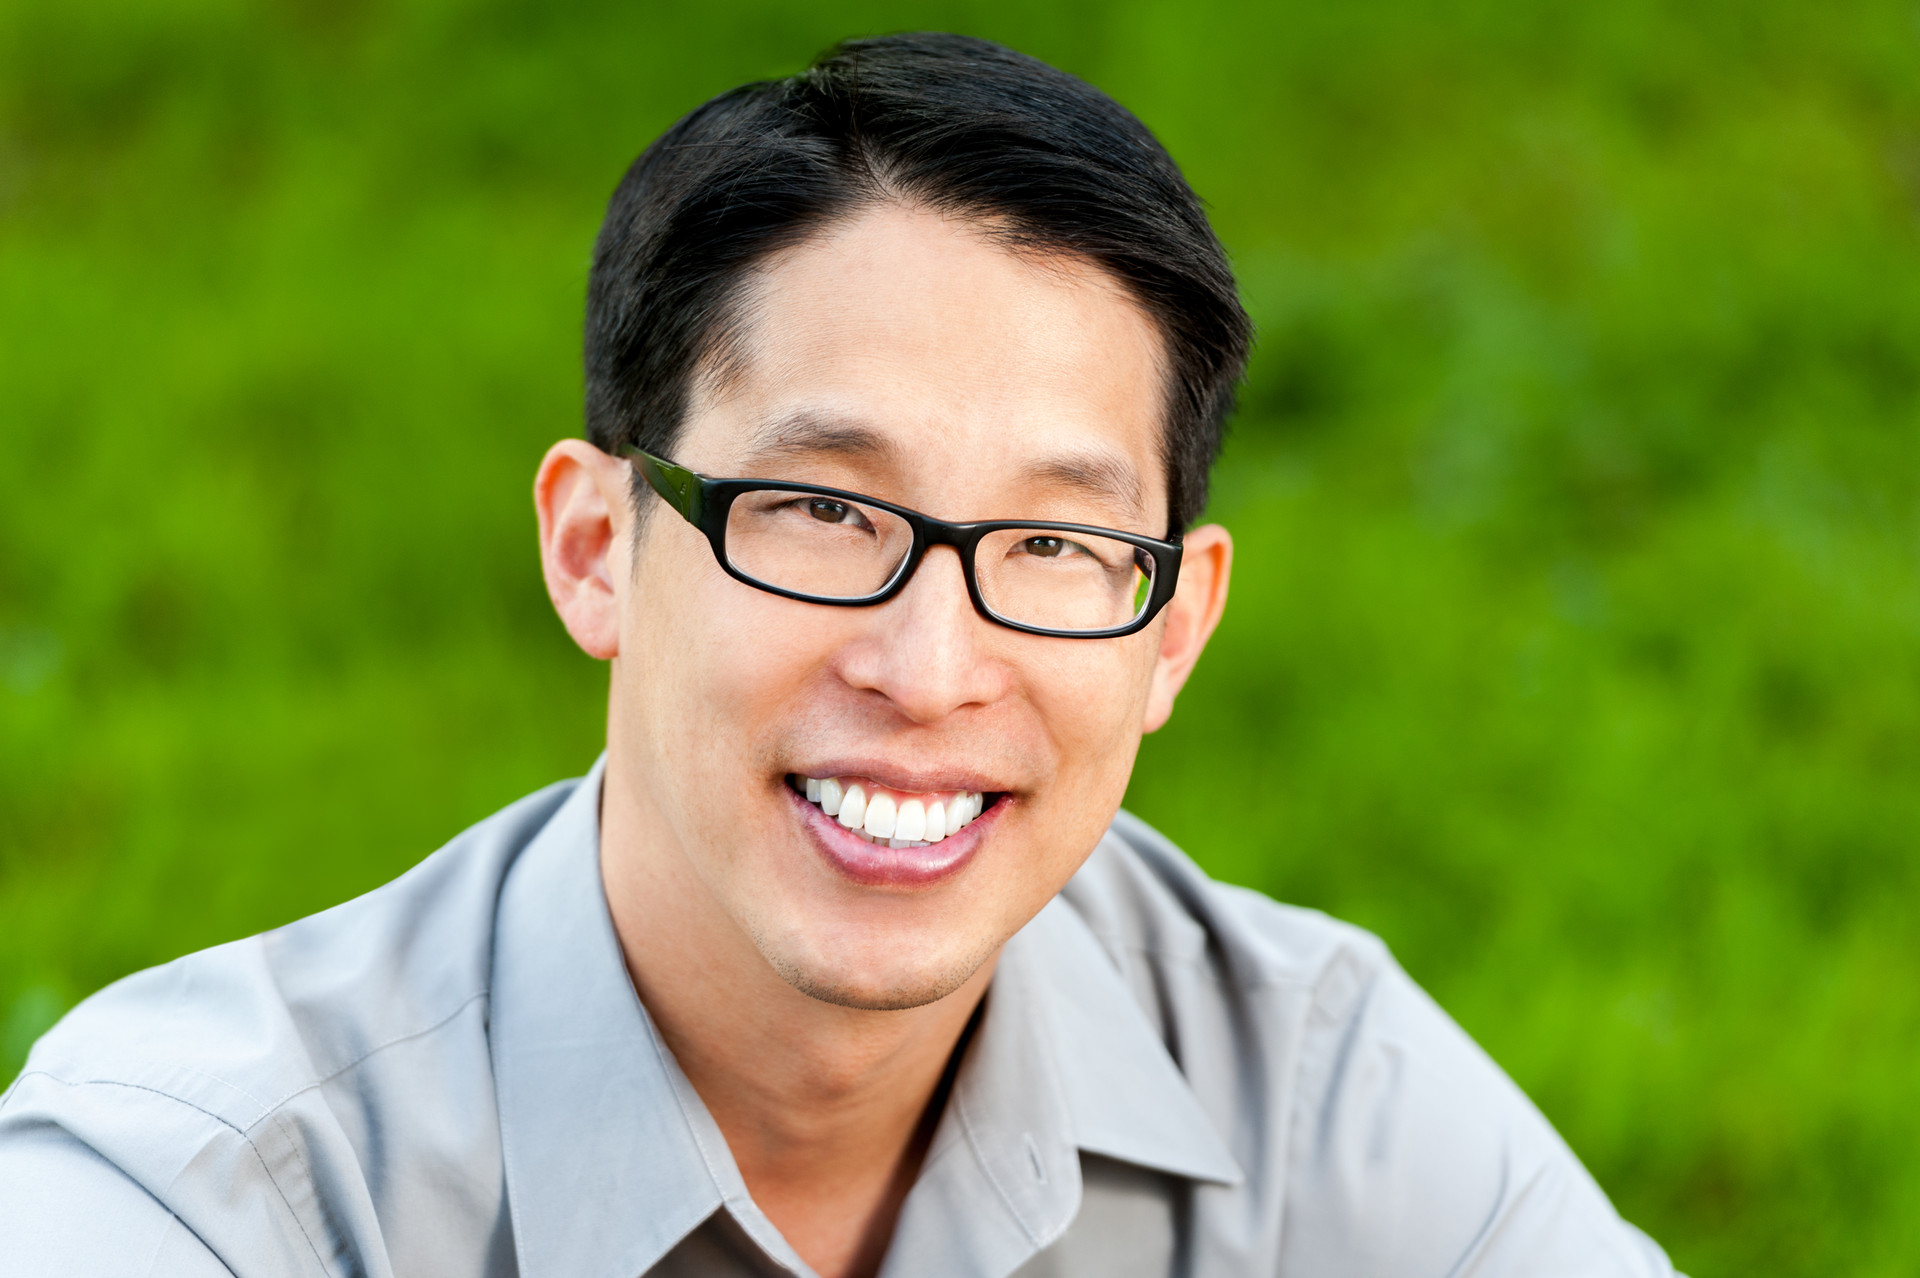 Gene Luen Yang is a National Book Award-nominated graphic novelist. He is the author of American Born Chinese, The Shadow Hero, Secret Coders and other comics.